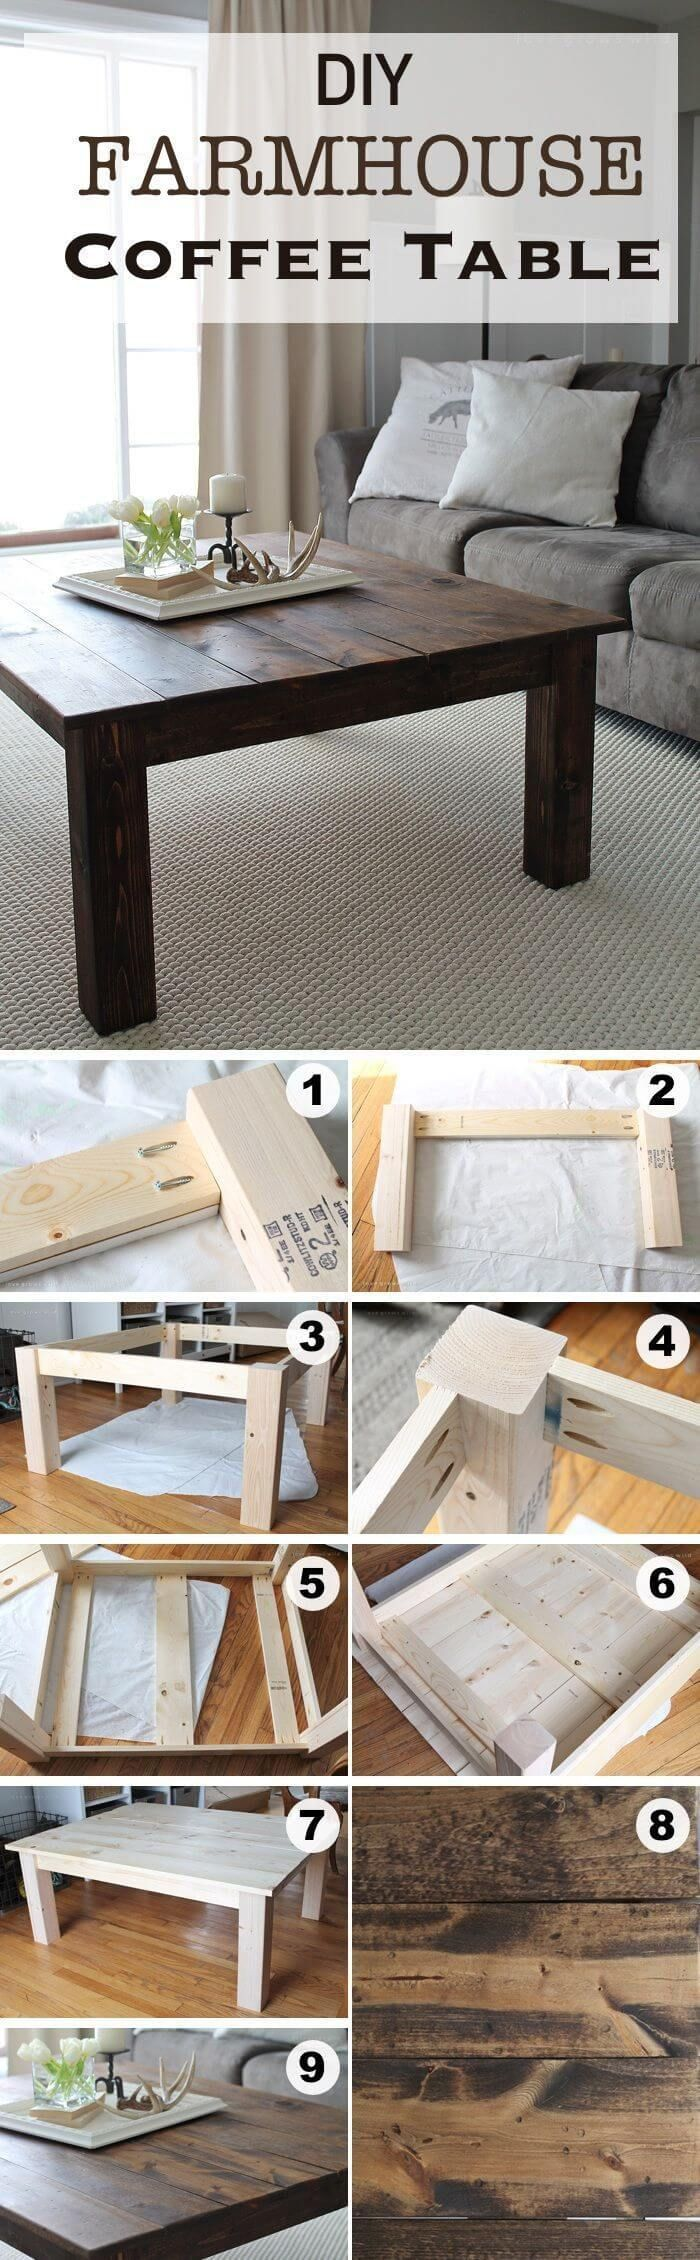 diy farmhouse coffee table ideas that are both practical and